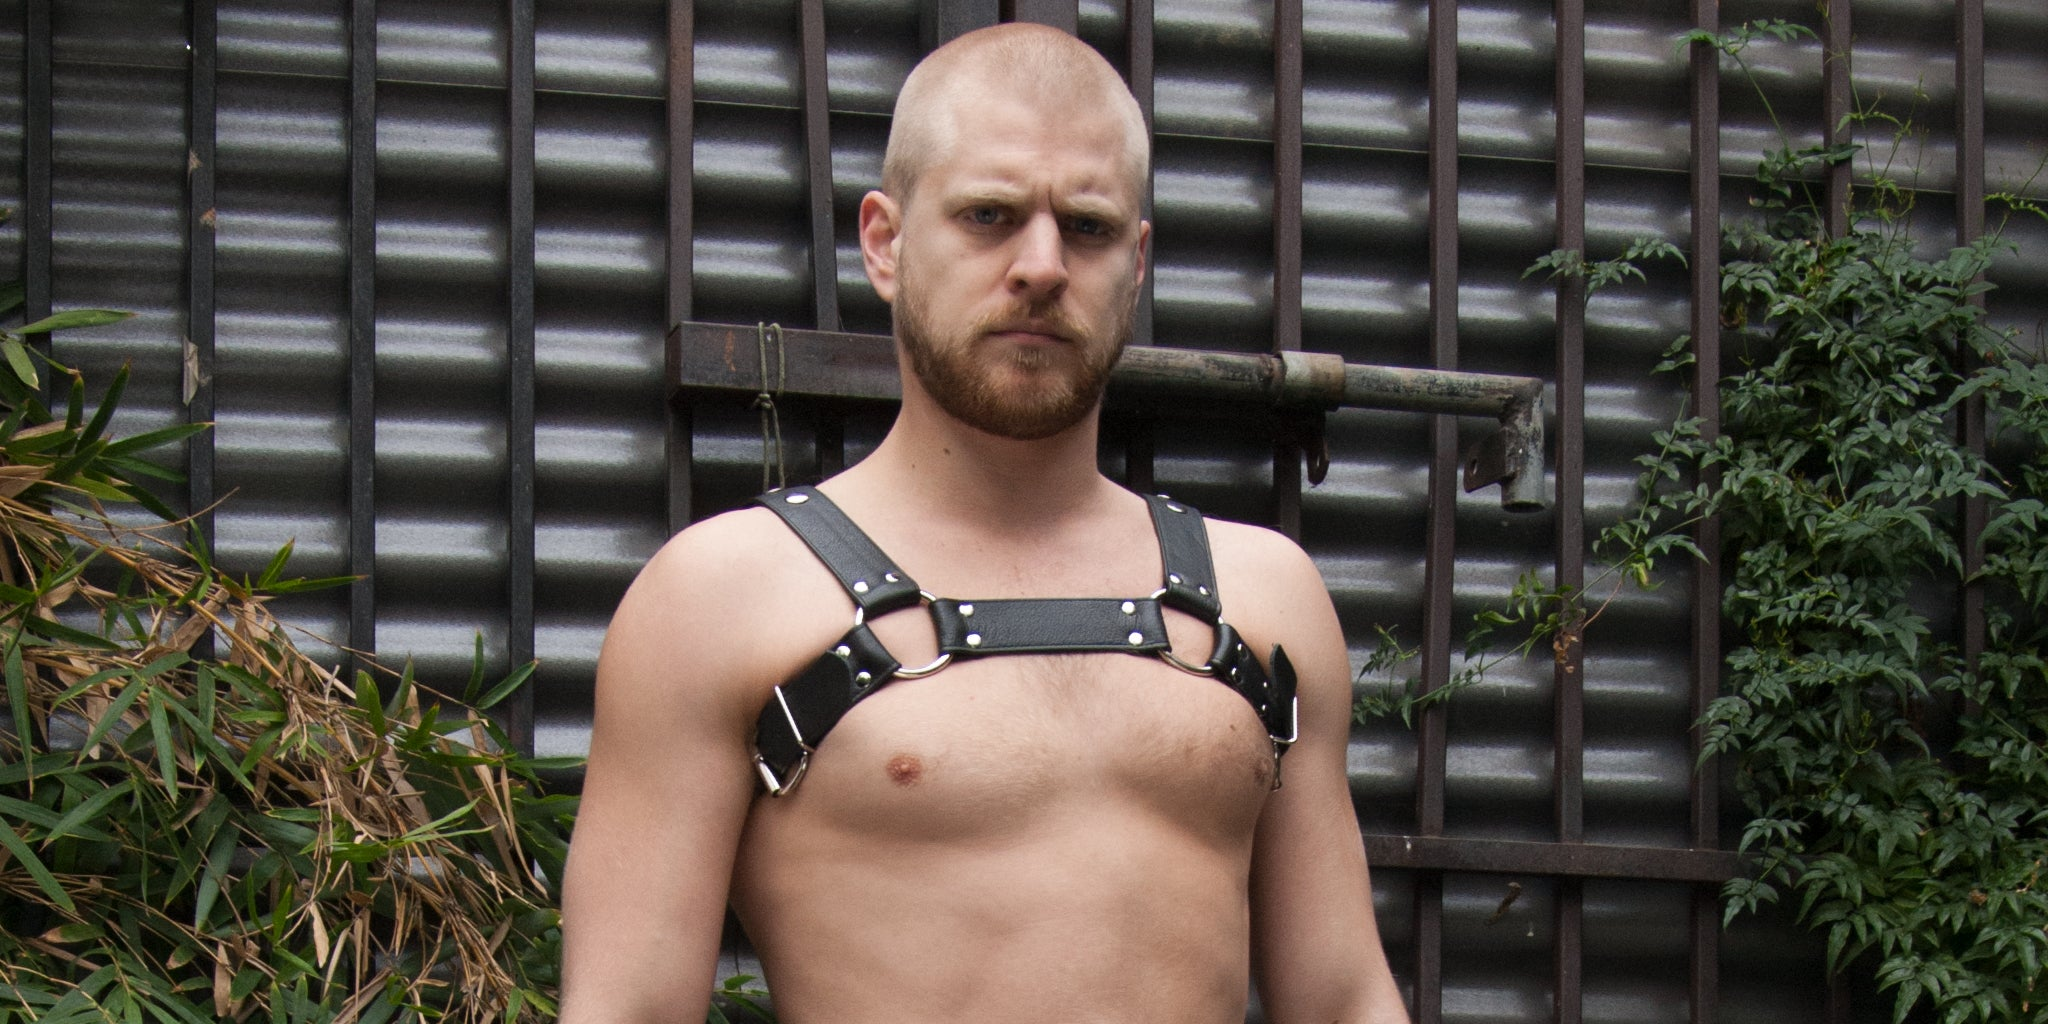 Male Stockroom: Bondage Gear, Sex Toys, and Fetish Wear for gay men. Based out of Los Angeles, California.